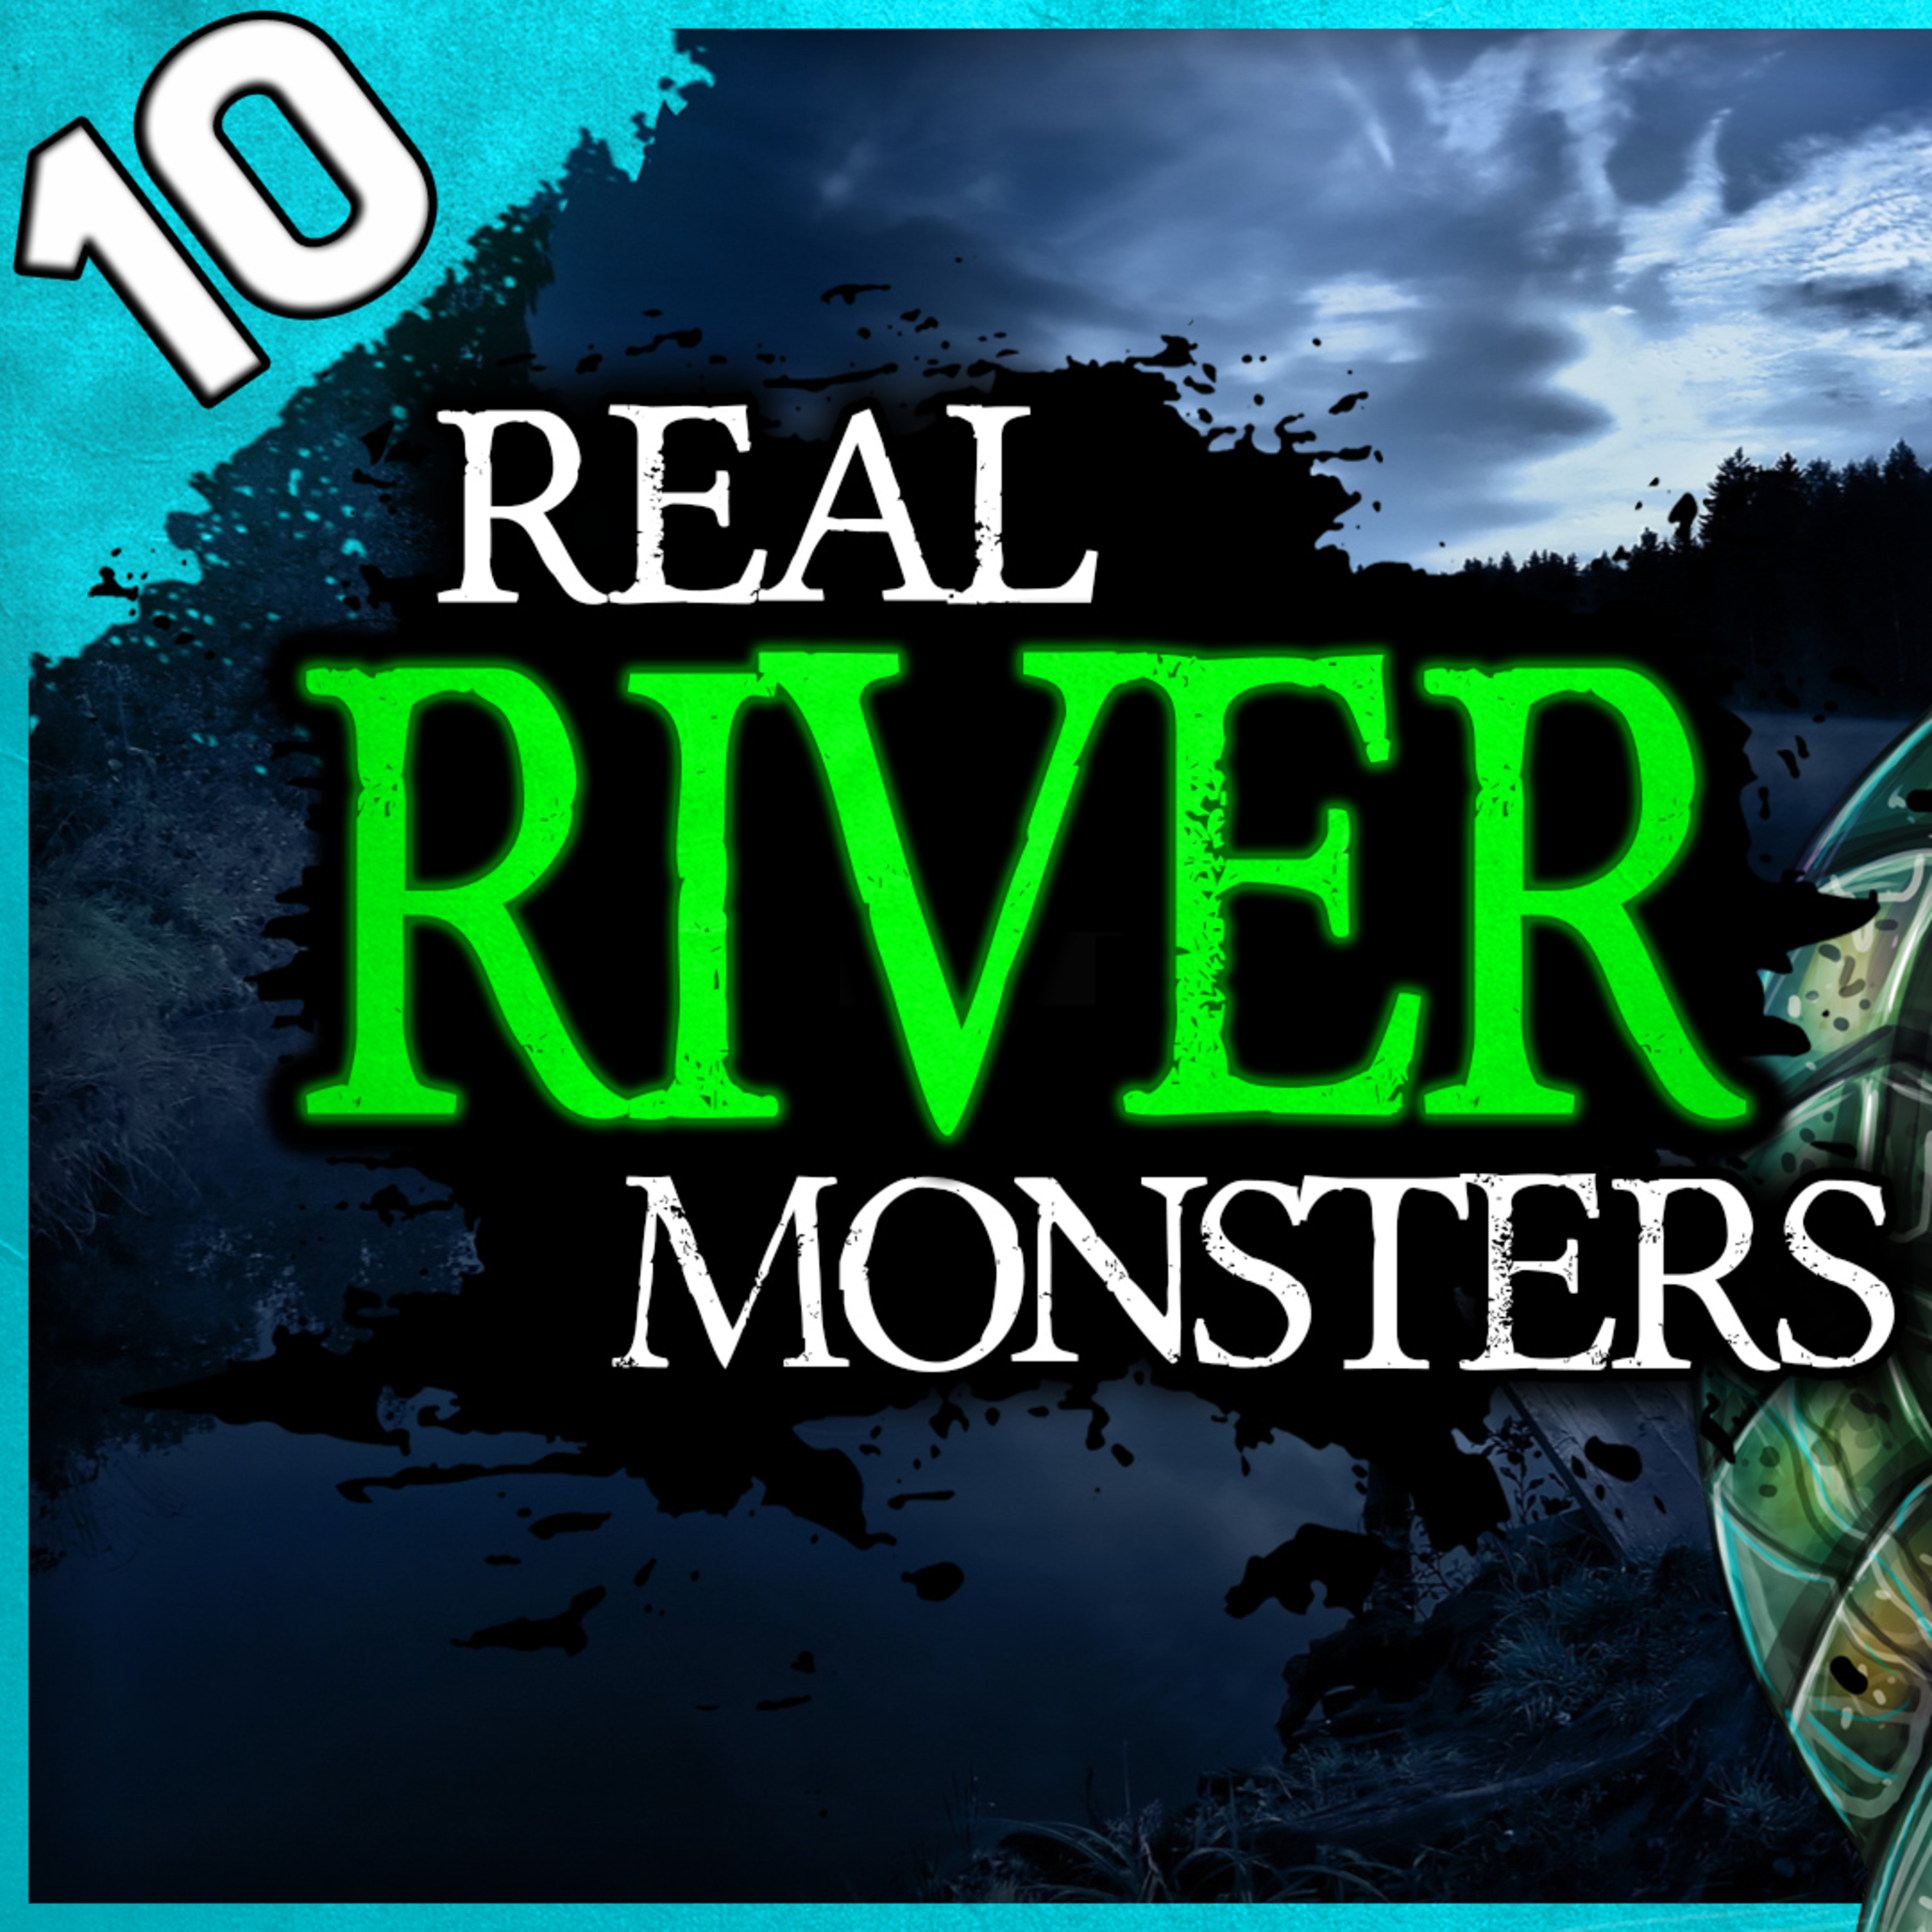 10 REAL River Monster Sightings | Darkness Prevails